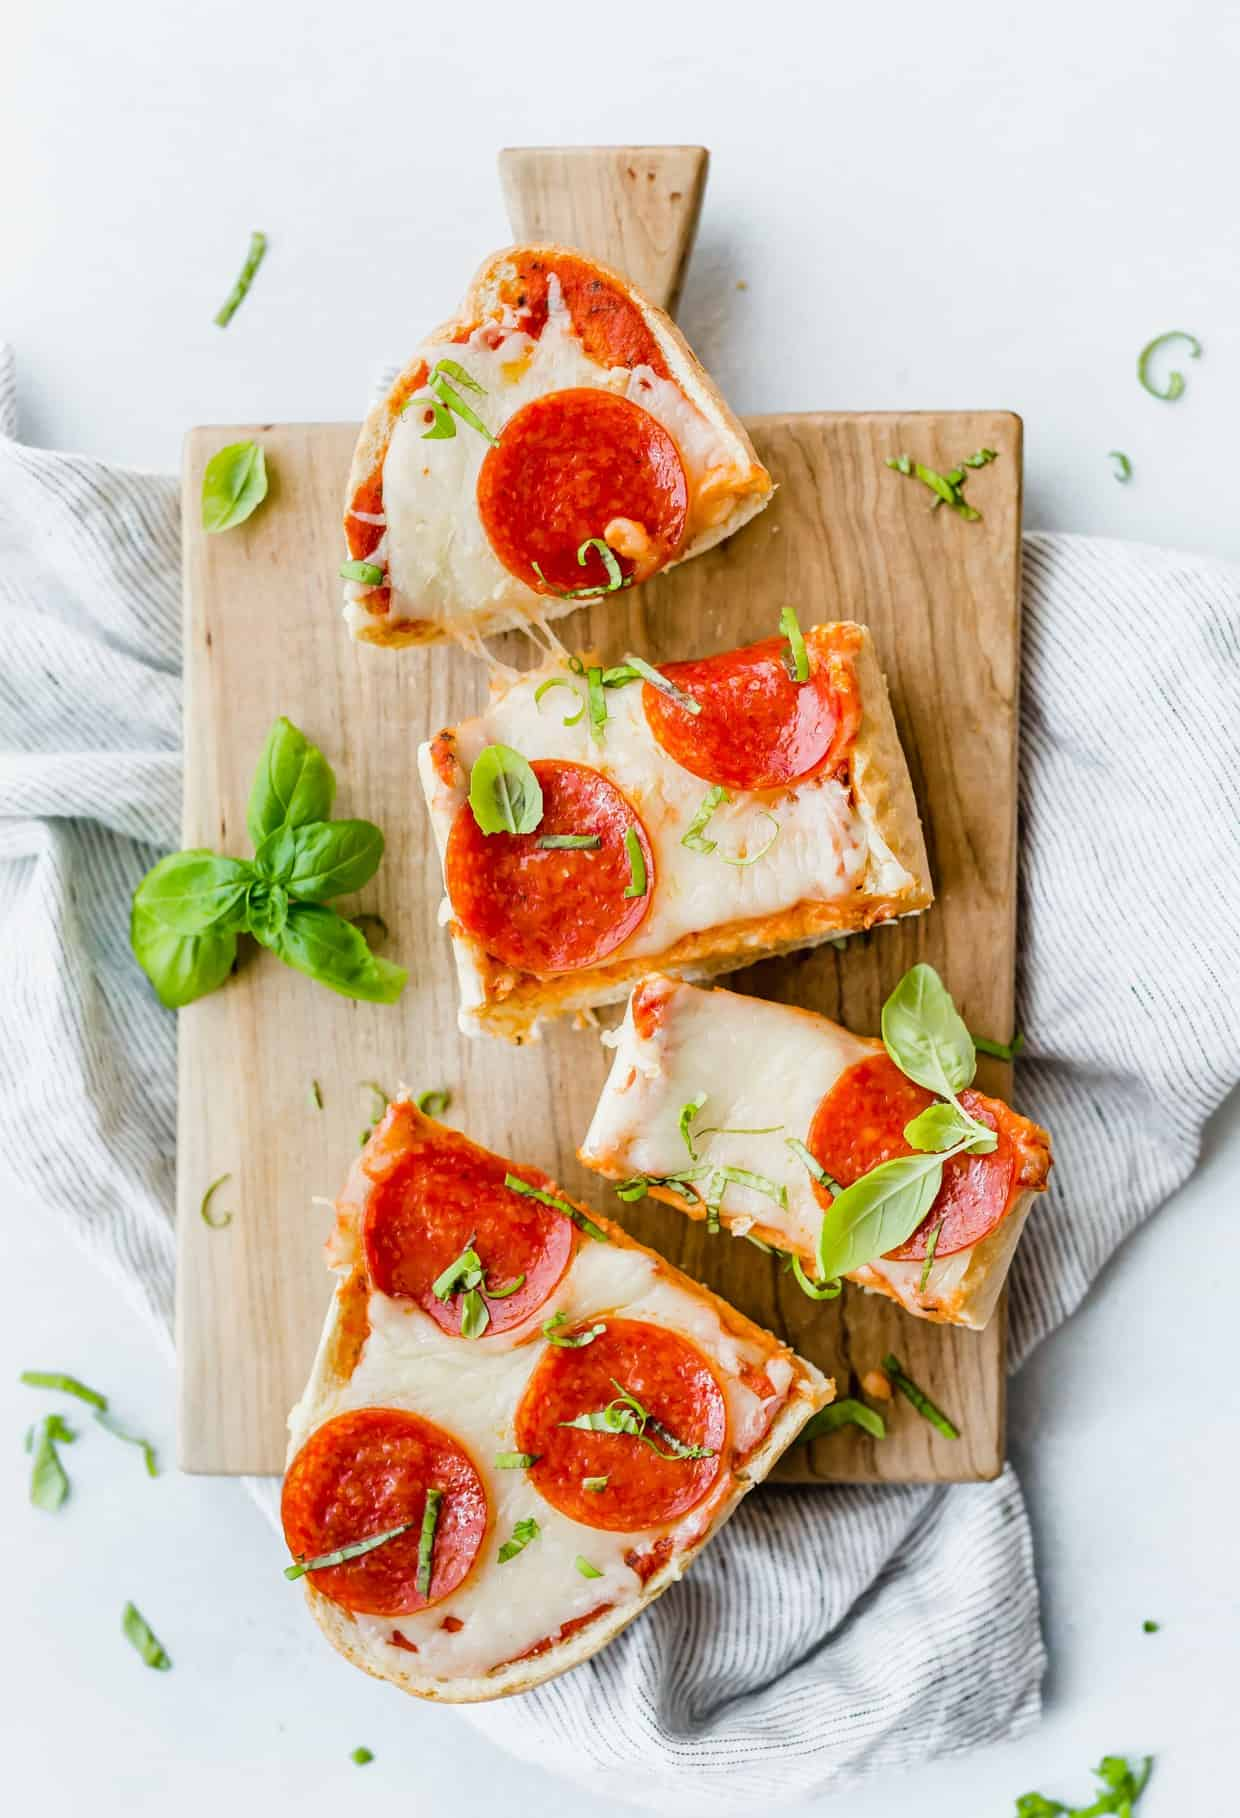 Overhead view of French Bread Pizza with pepperoni on top and a basil garnish.